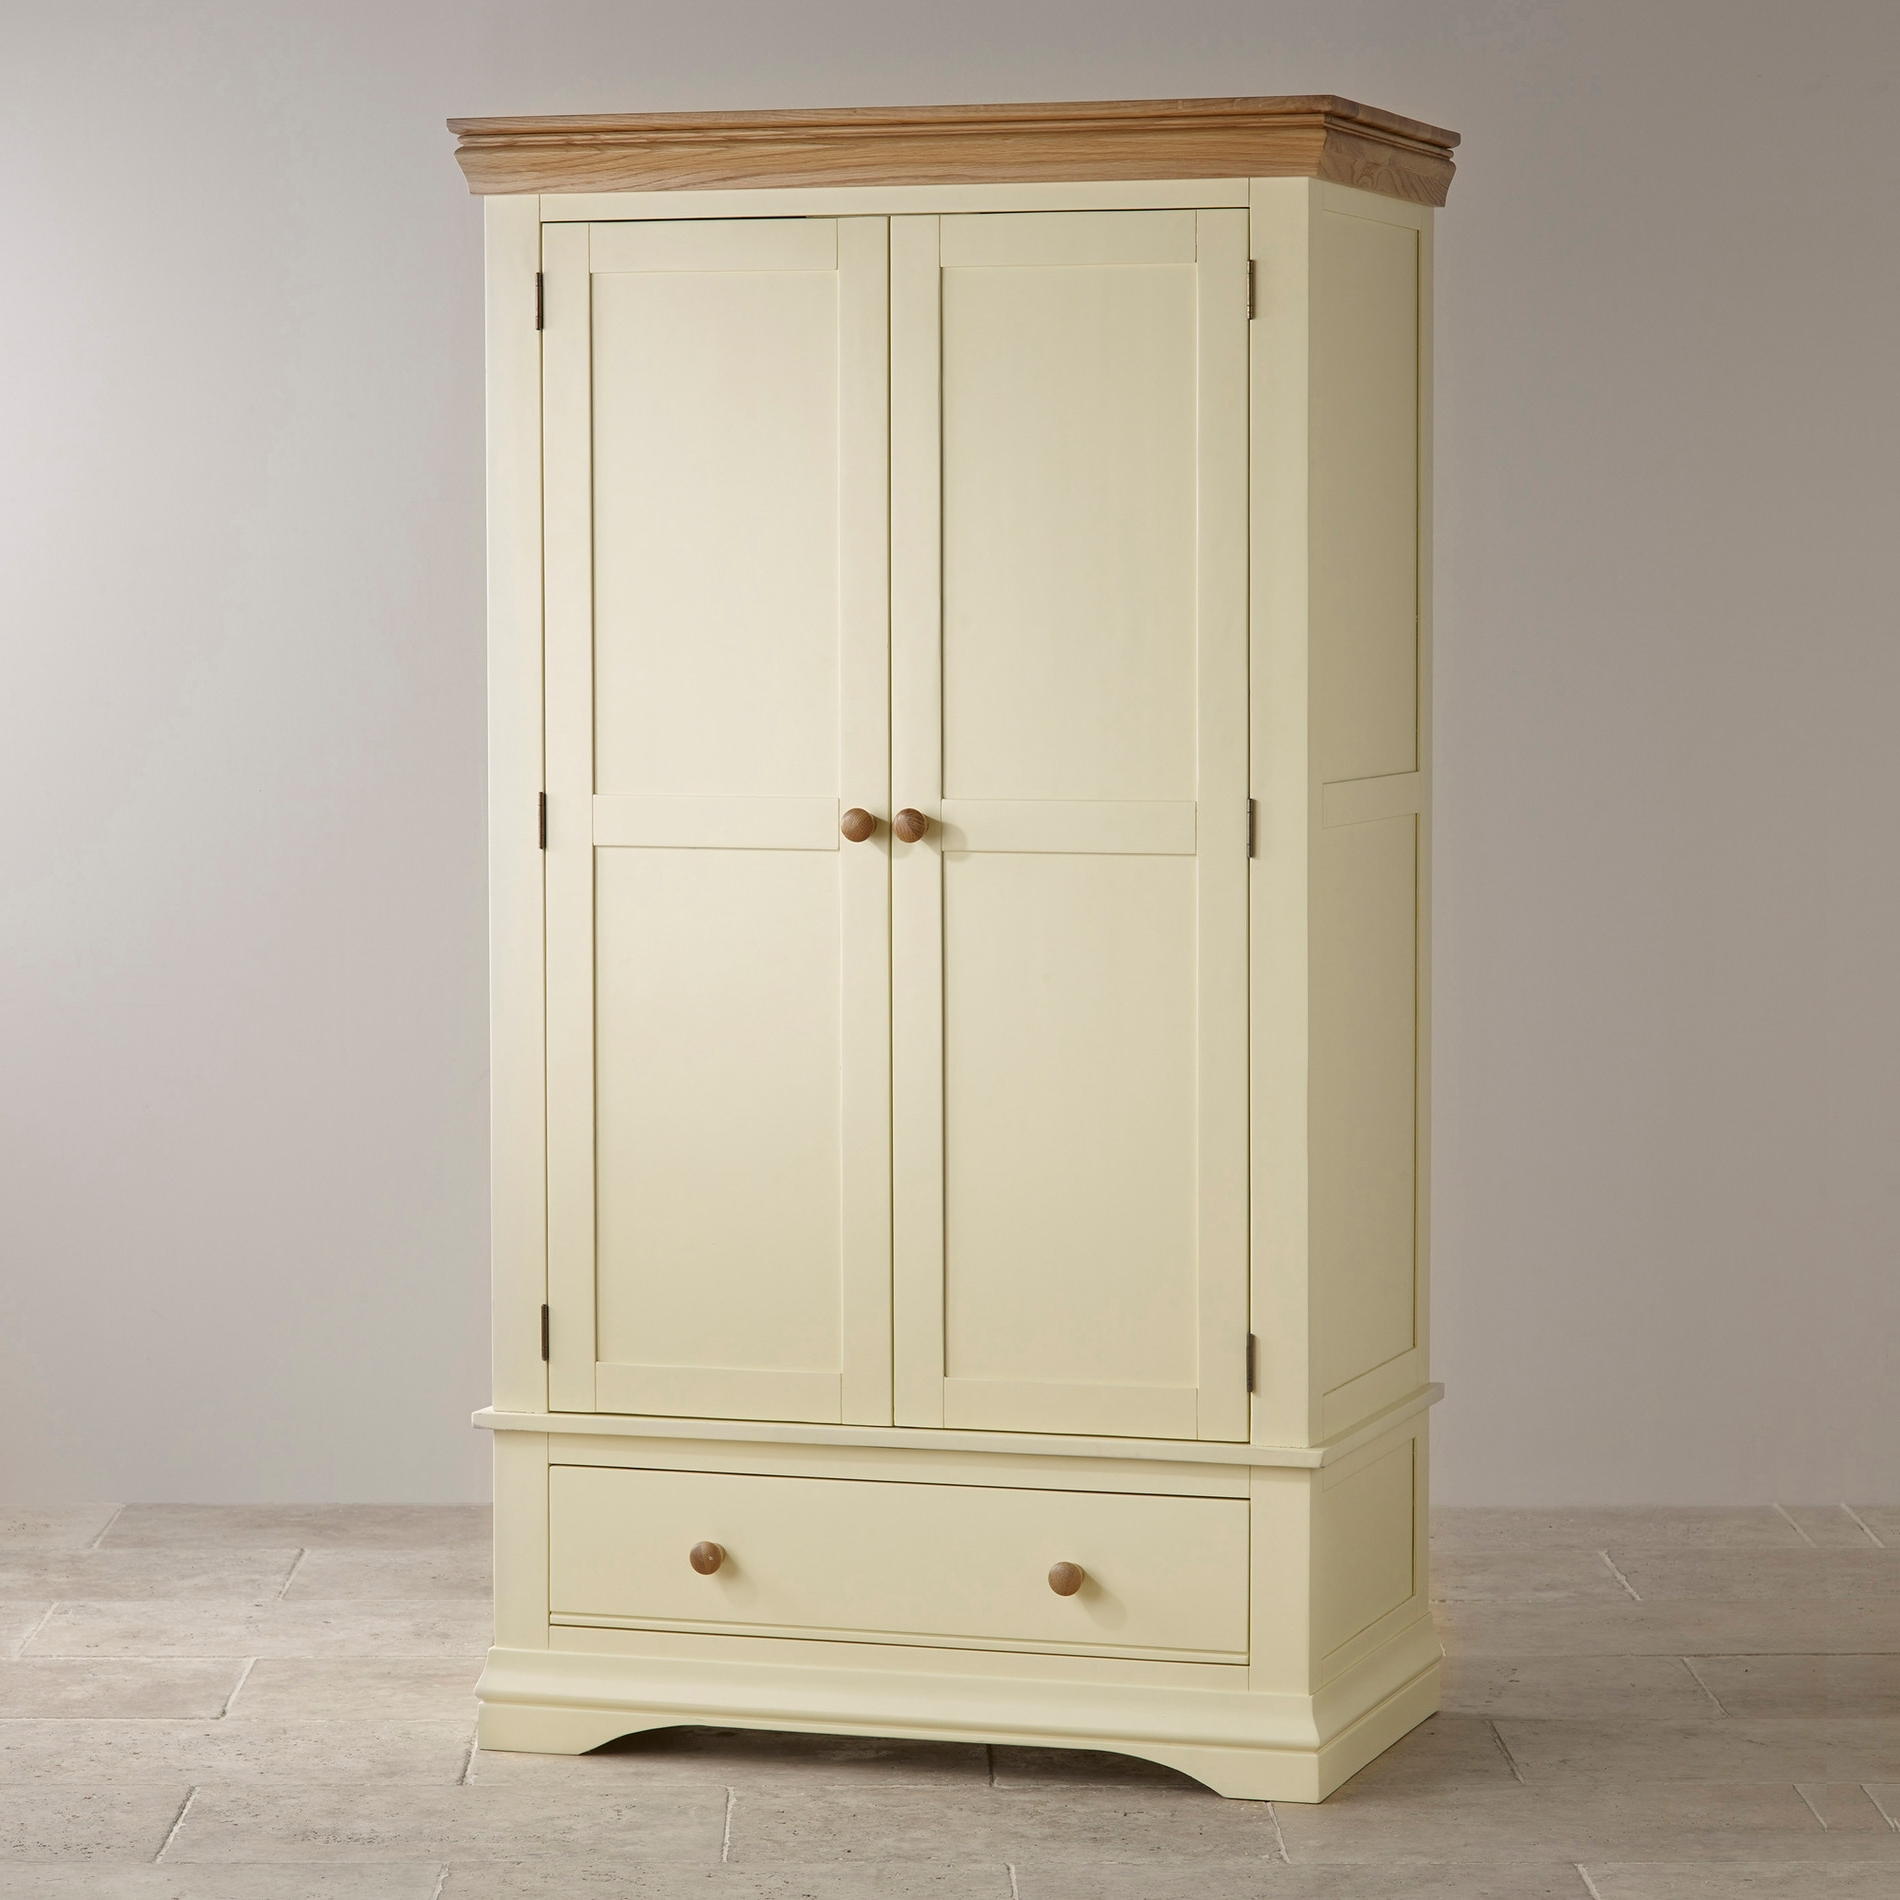 Most Popular Oak Wardrobes For Sale Intended For Country Cottage Painted Double Wardrobe In Natural Oak (View 9 of 15)